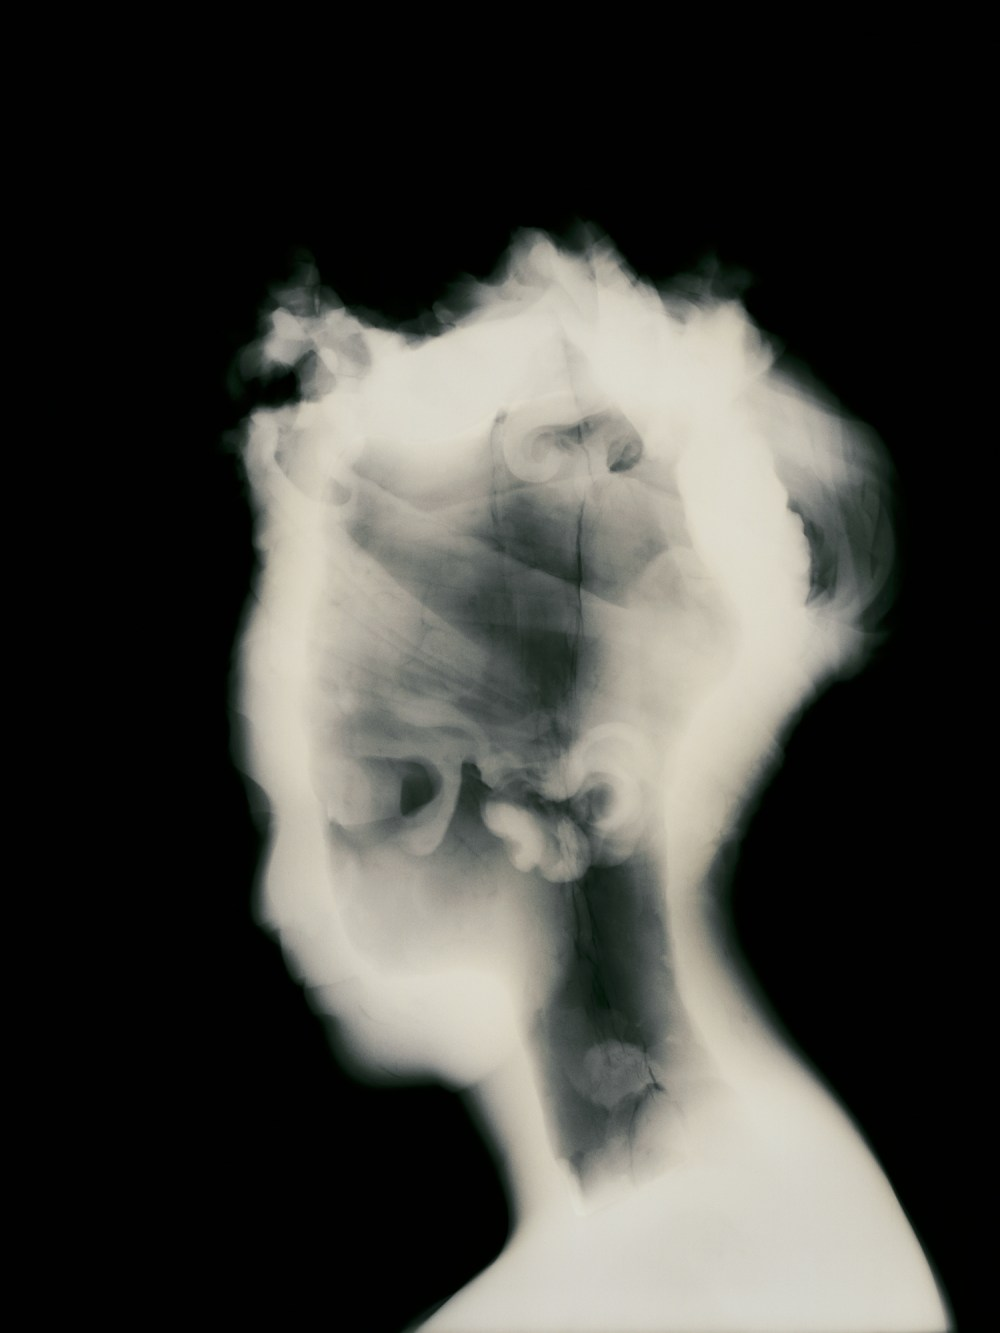 x-ray photograph of antique statue